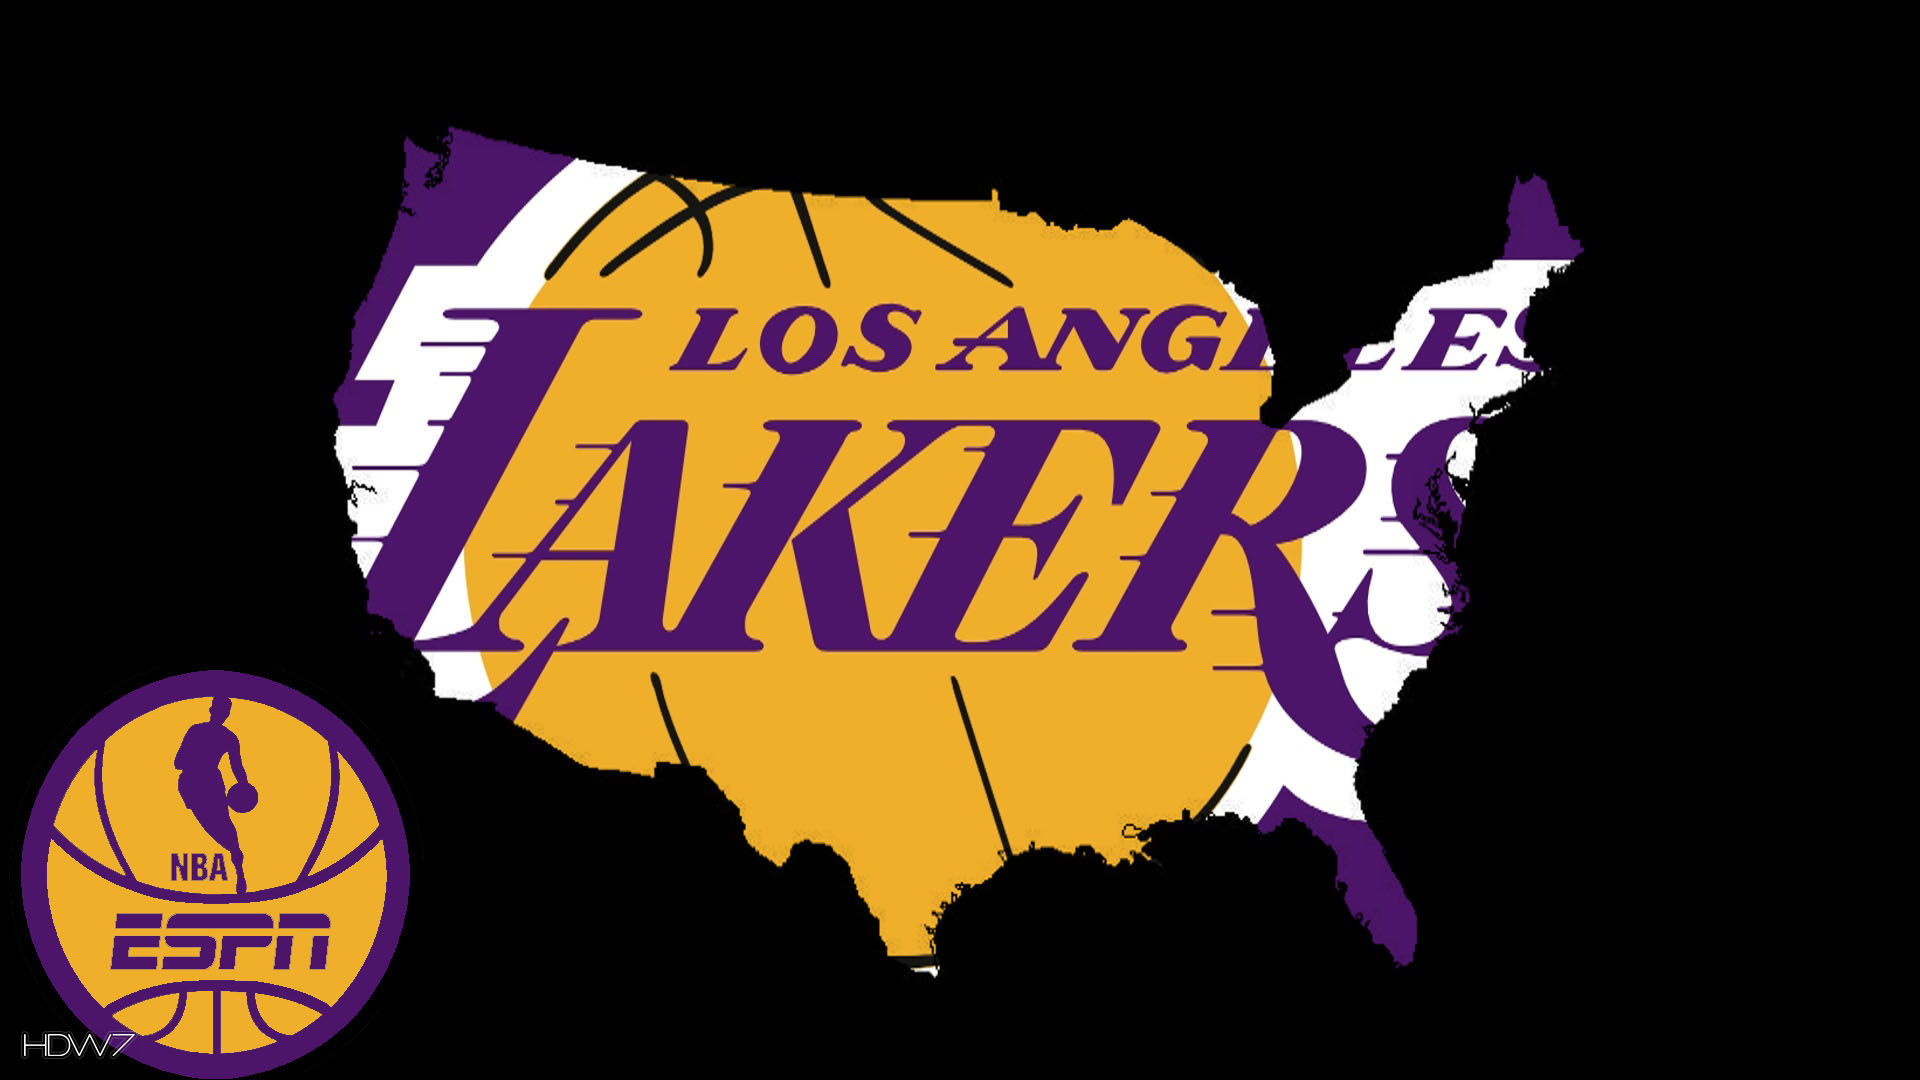 hdw7comwallpapers 127nba usa los angeles lakers 1920x1080html 1920x1080